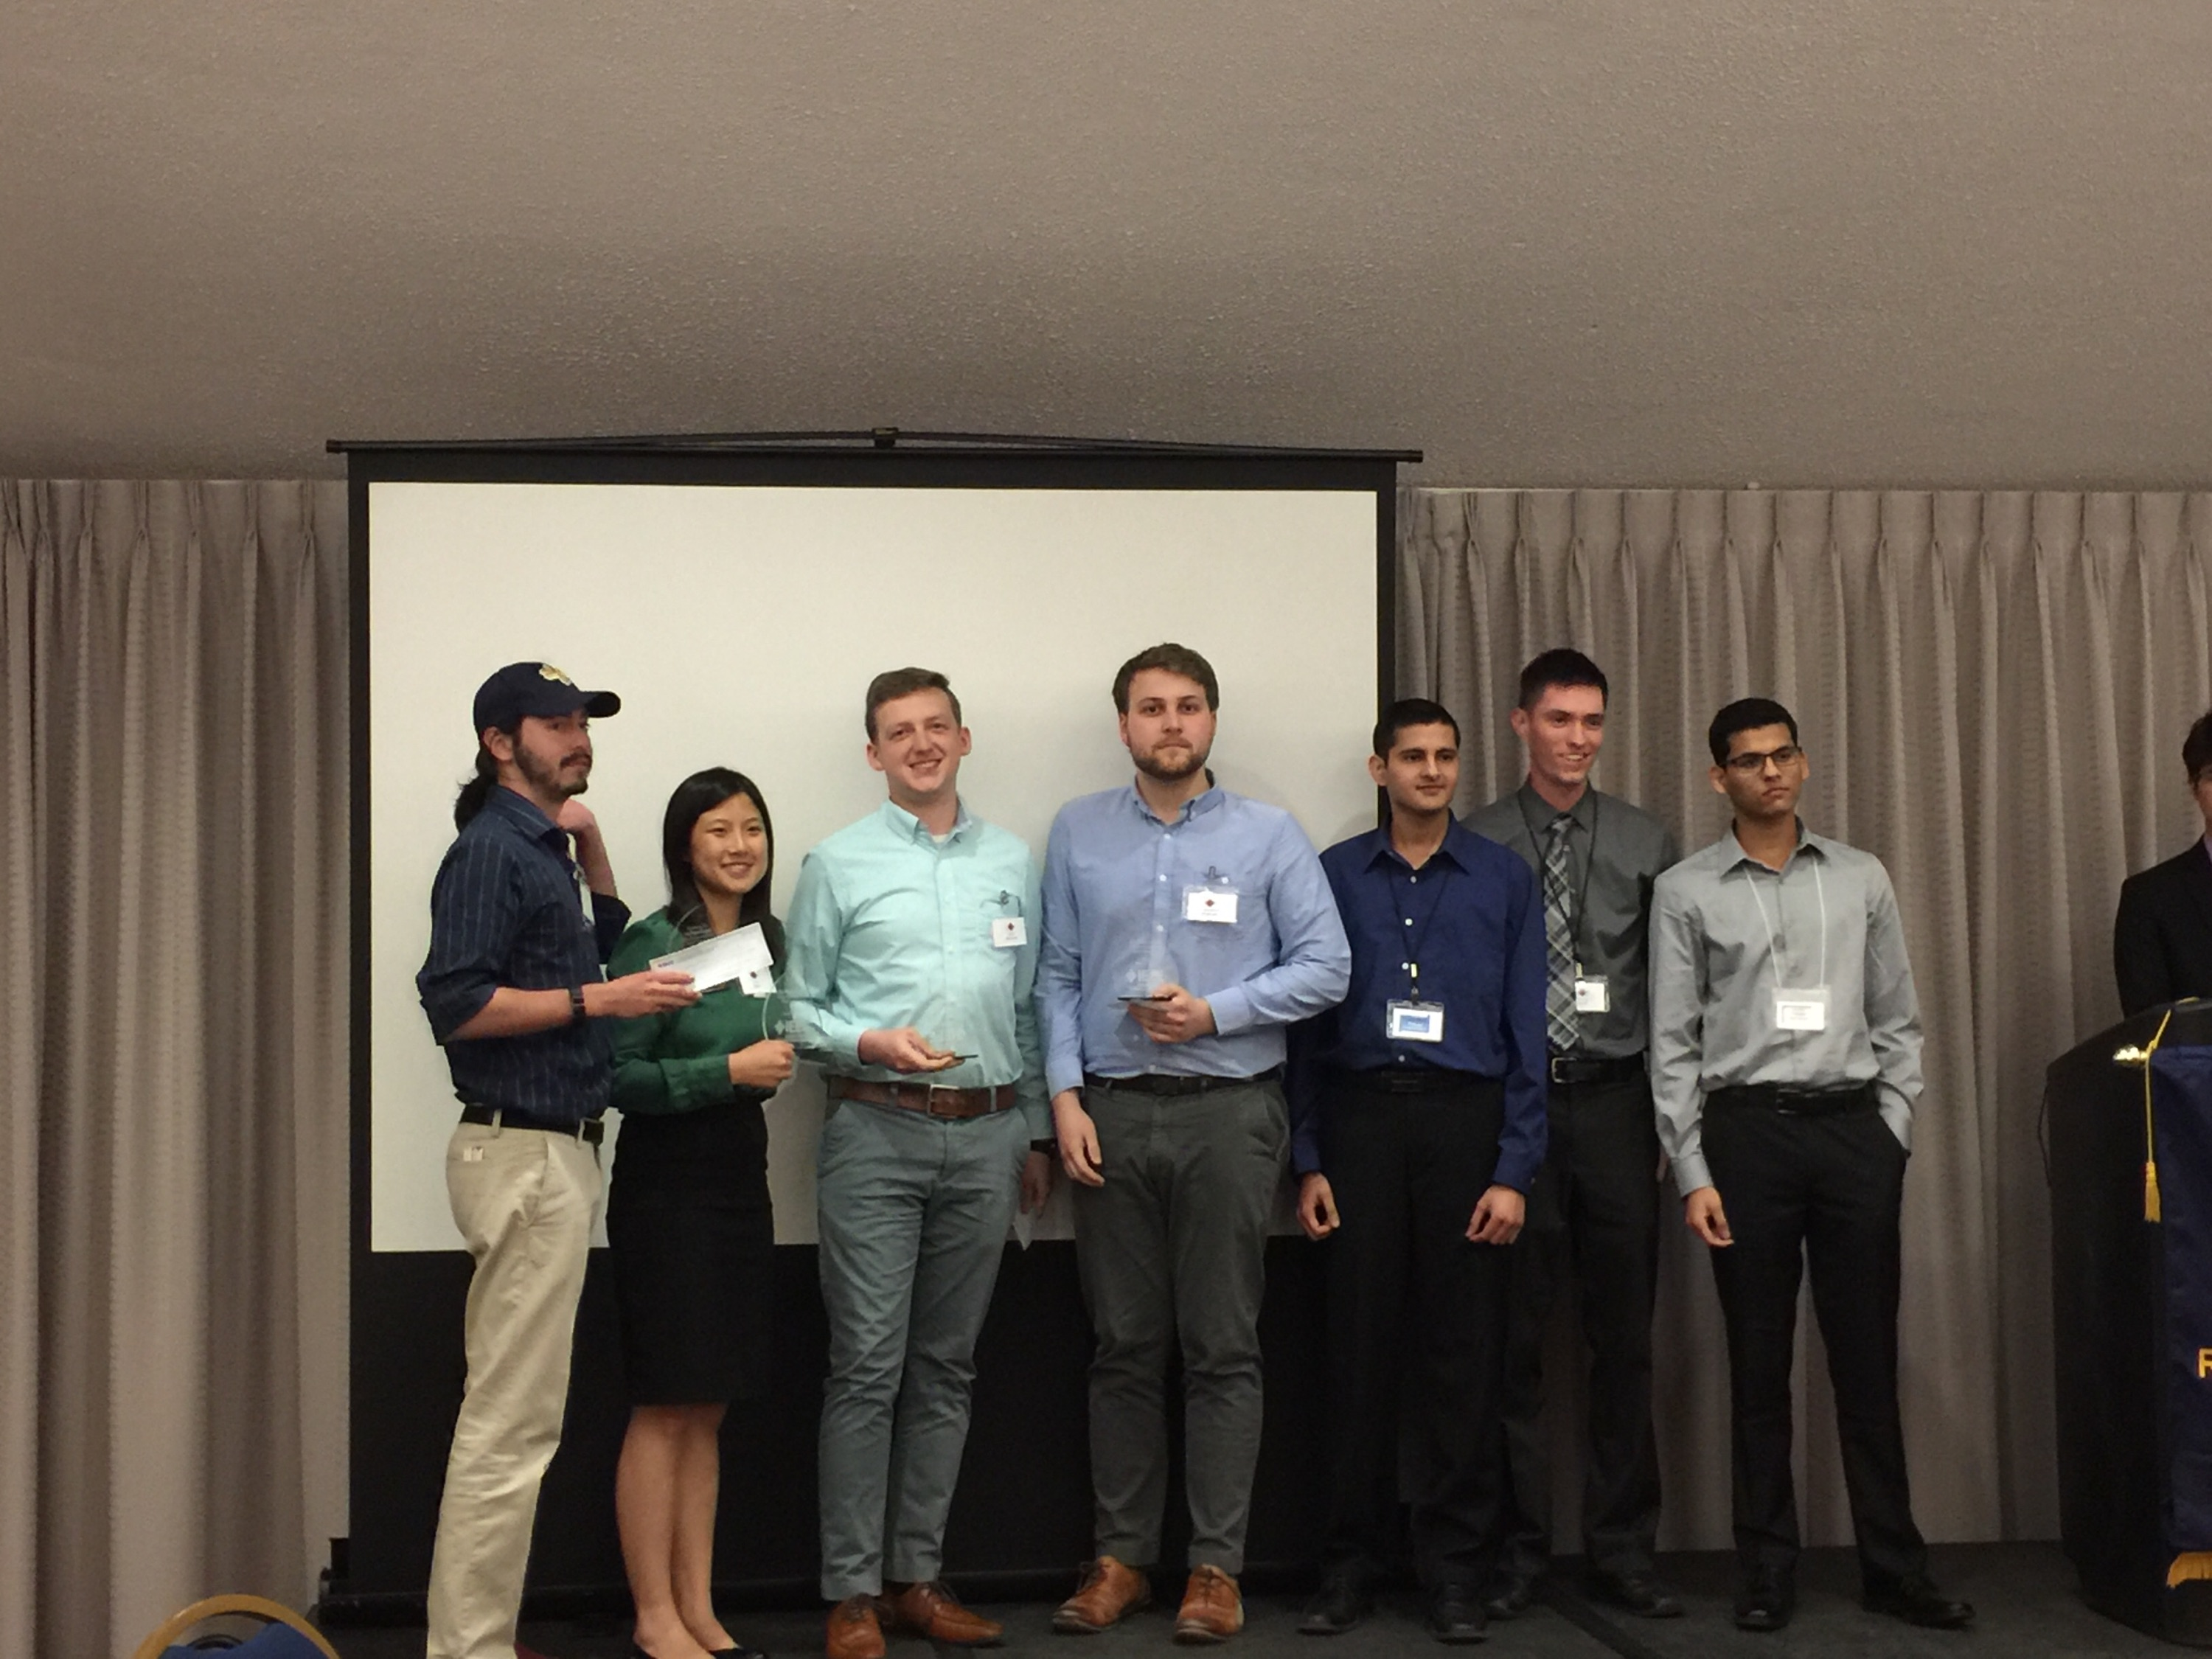 Two of our senior electrical engineering majors who placed first in a competition during the Institute of Electrical and Electronics Engineers Region 4 Student Leadership Conference last weekend at Northern Illinois University. Nate Scharich of Saginaw Township and Alexander Shibilski of Freeland were the Region 4 champions in the circuit design and Arduino coding competition.